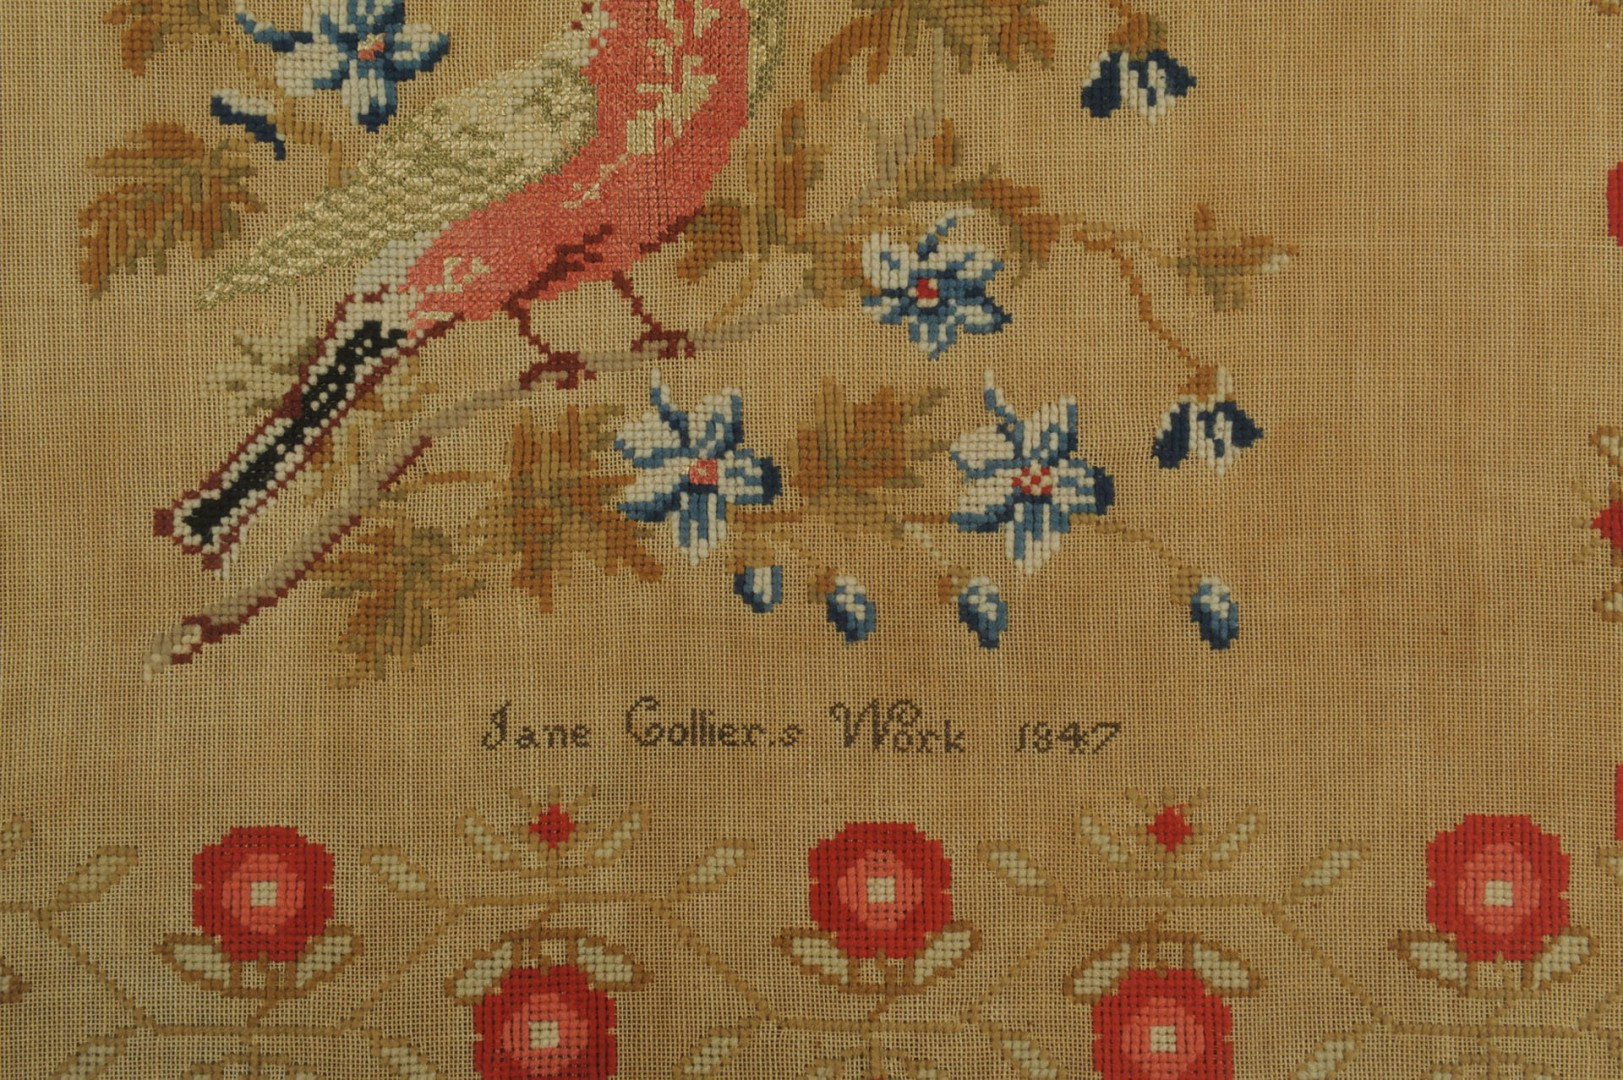 English needlework sampler, Jane Collier